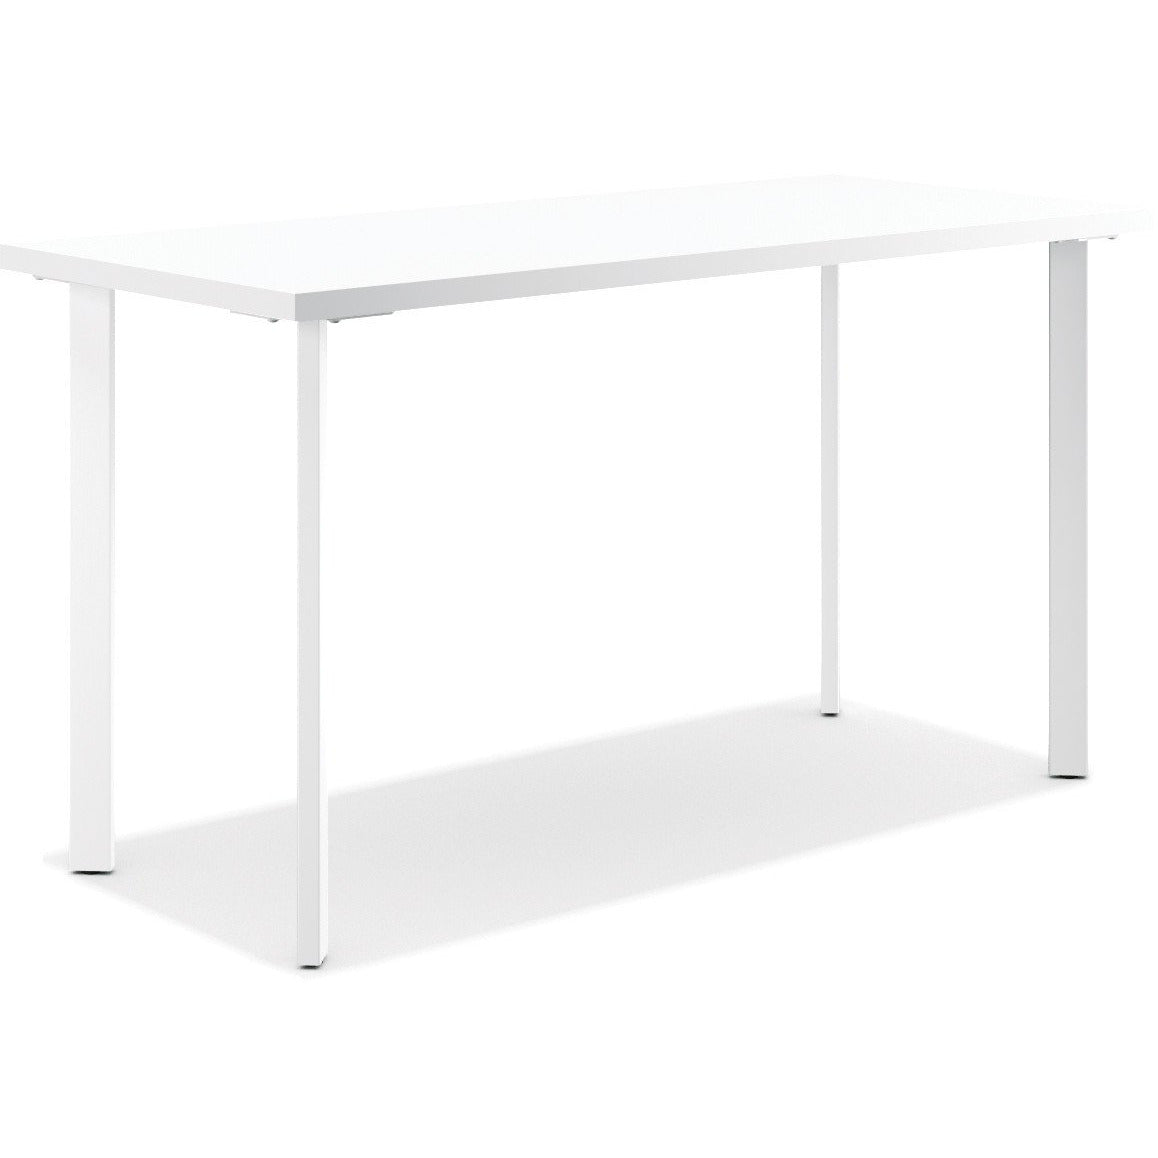 Coze Table Desk with Post Legs